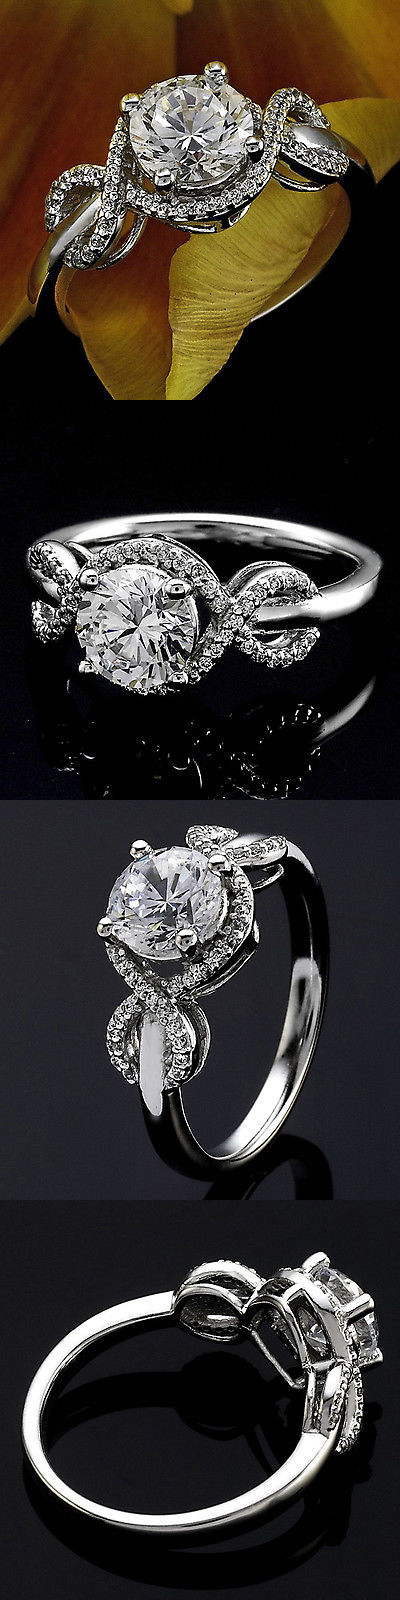 Diamond 164306: 1 Round Cut Diamond Solitaire Engagement Ring Vs2 D 14K White Gold Enhanced -> BUY IT NOW ONLY: $1275 on eBay!